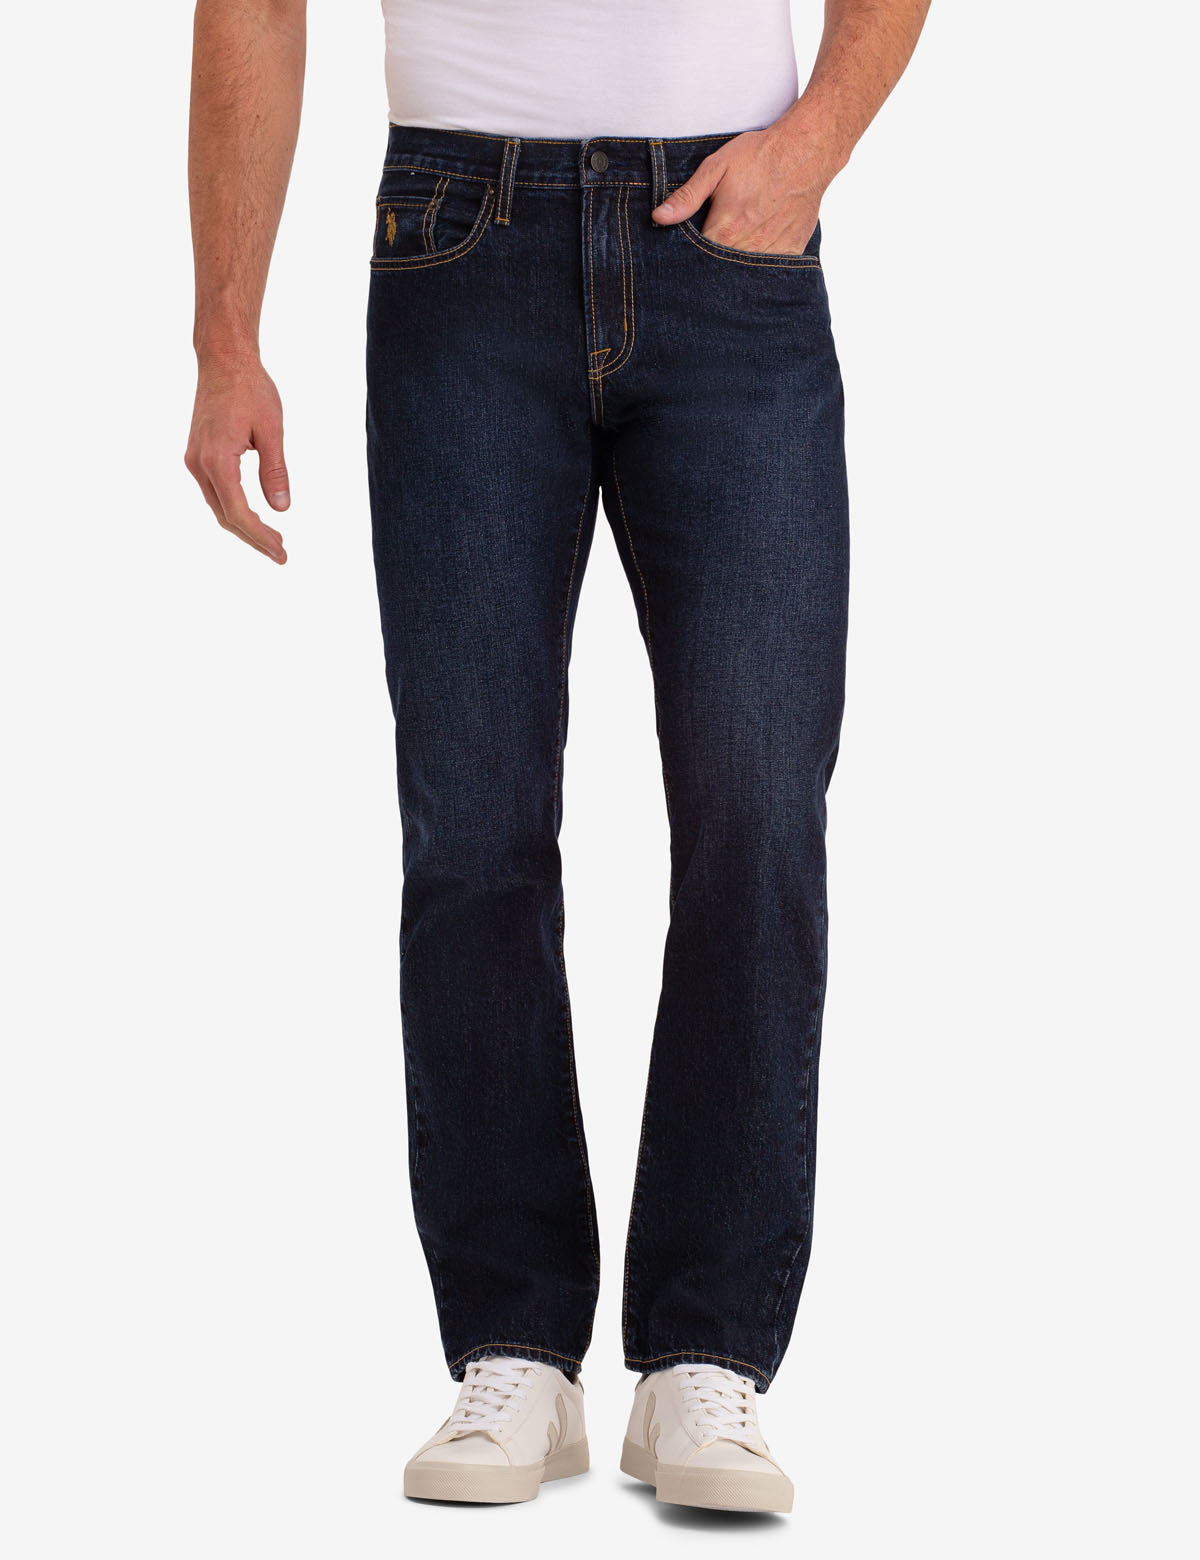 U.S. Polo Assn. - Mens Classic Straight Fit Jeans